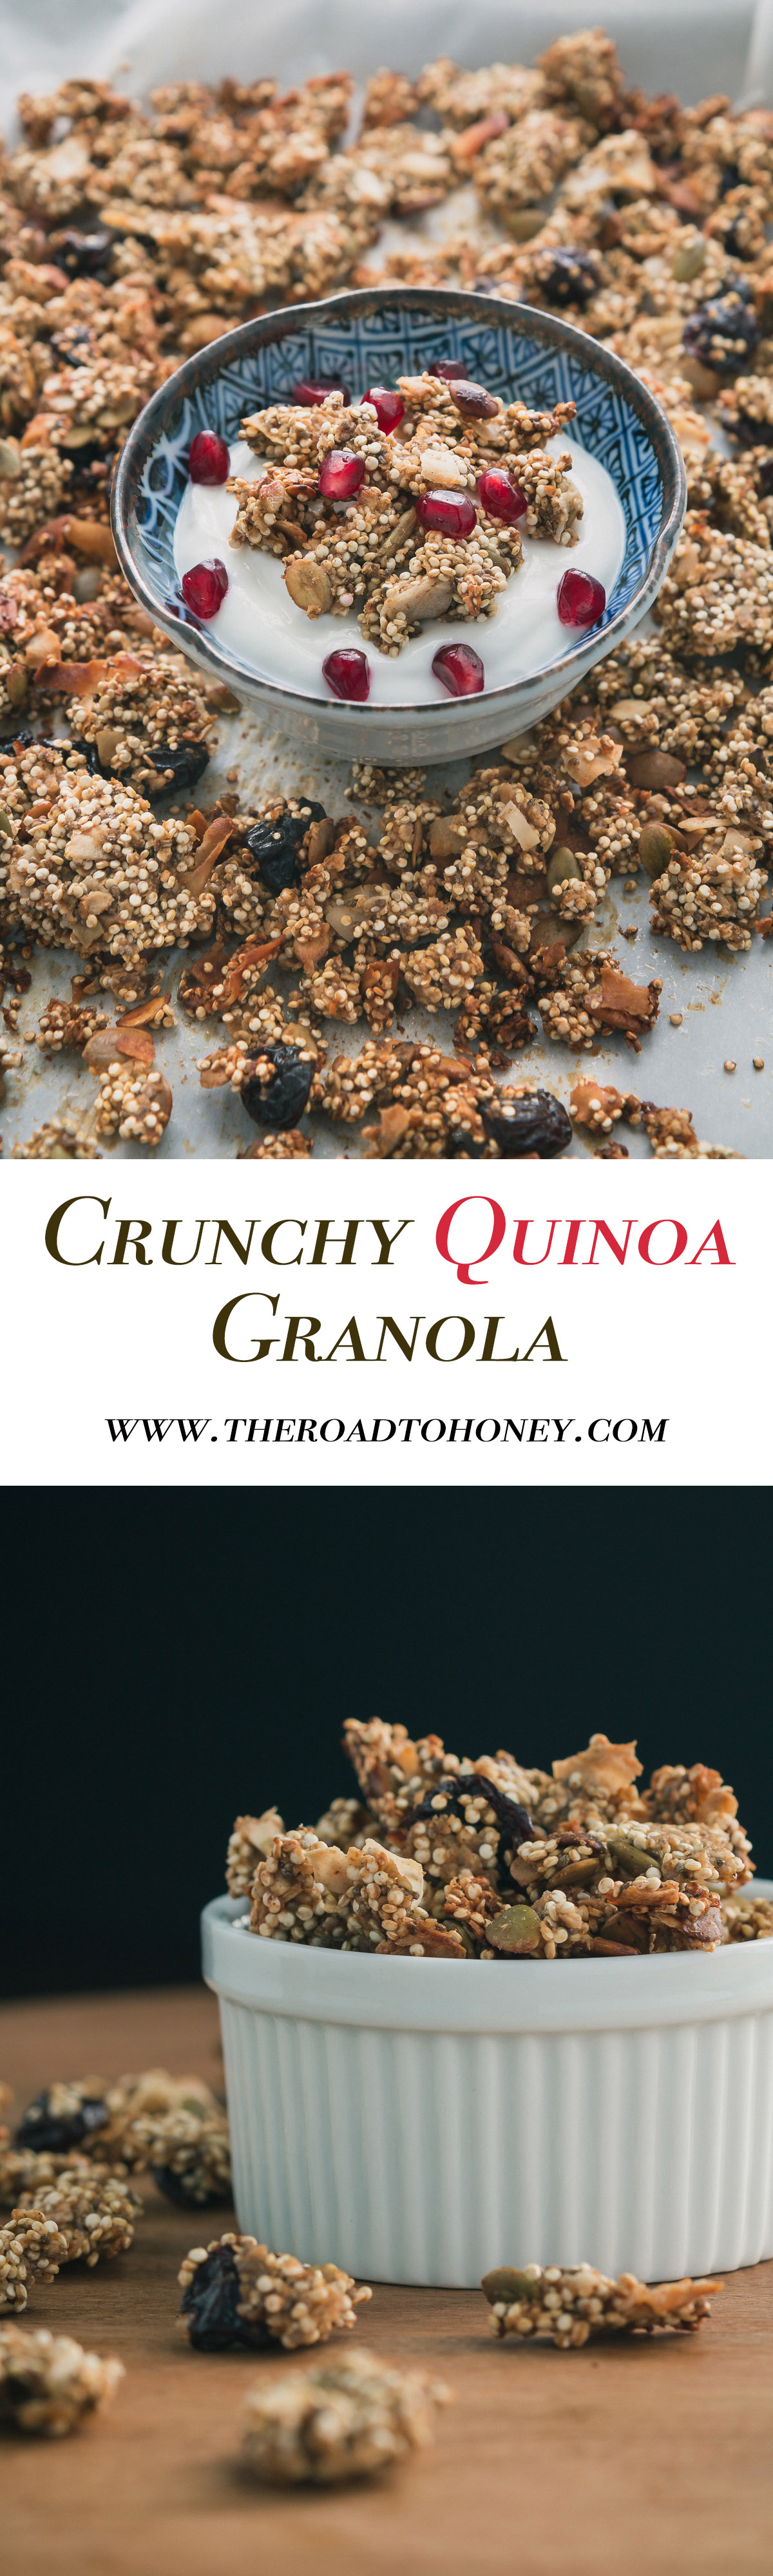 Crunchy Quinoa Granola - Granola gets a healthier makeover with quinoa & other wholesome clean ingredients such as pumpkin seeds, cherries, chia seeds & coconut. Click for RECIPE.